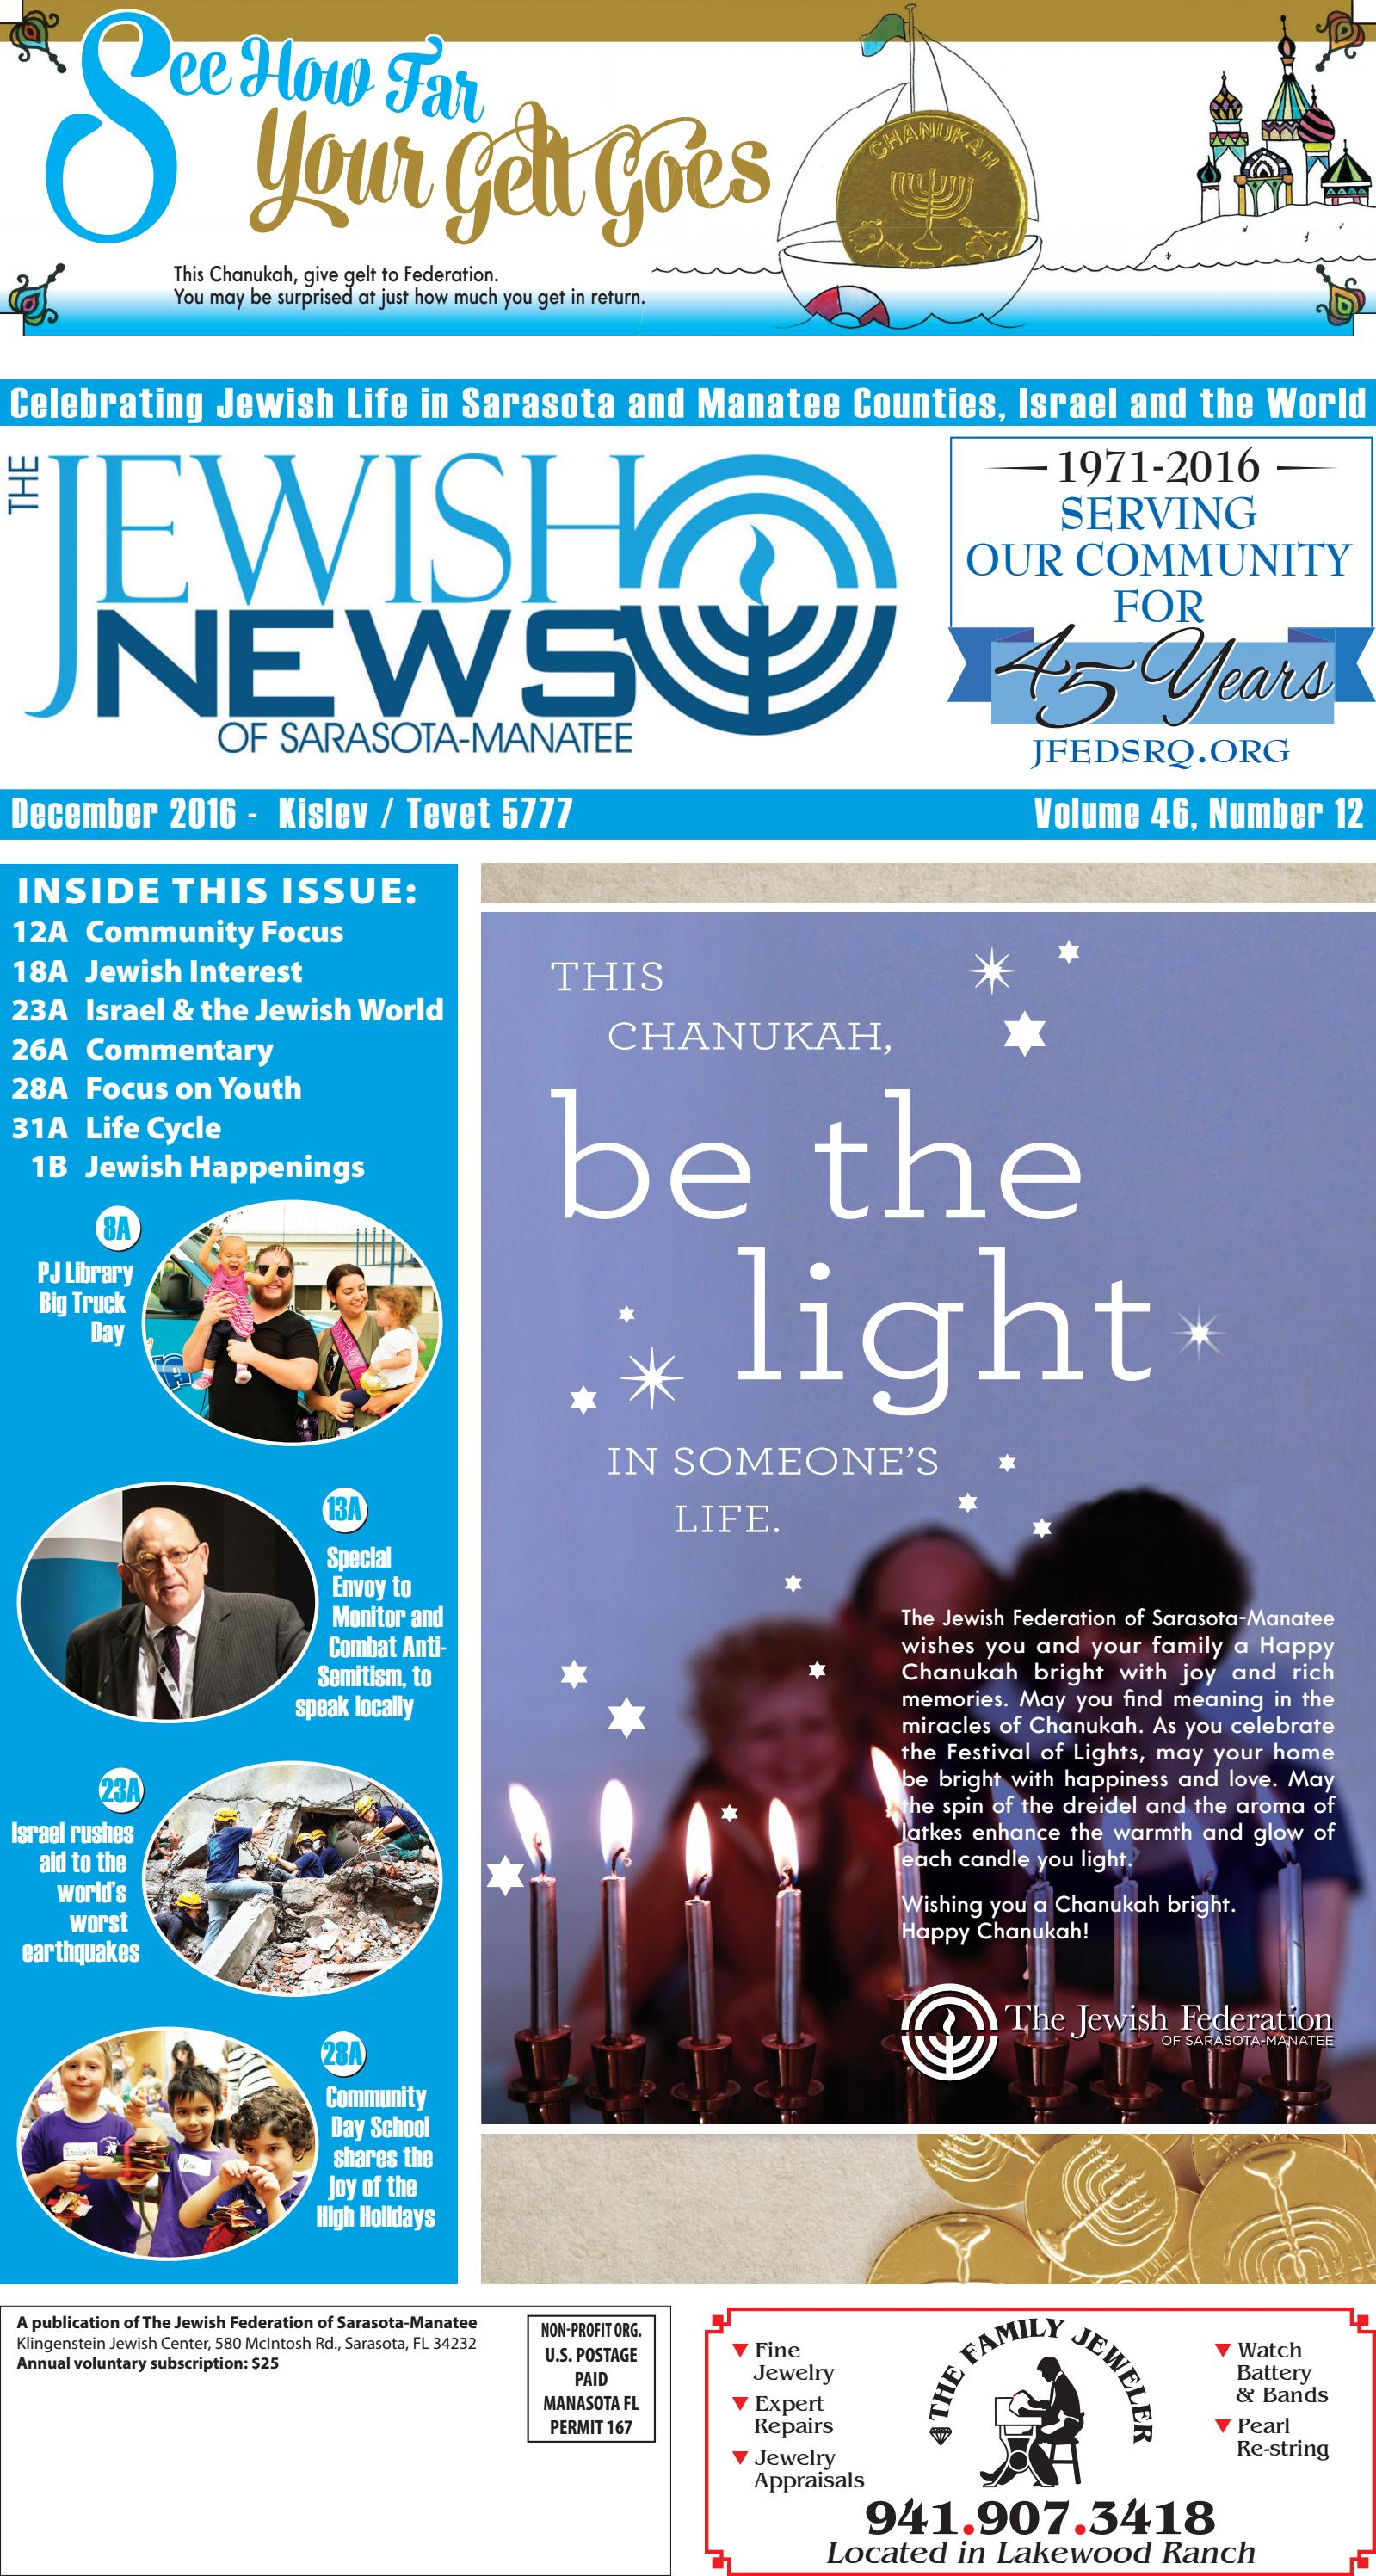 Jewish speed dating 65+ palm beach county fl